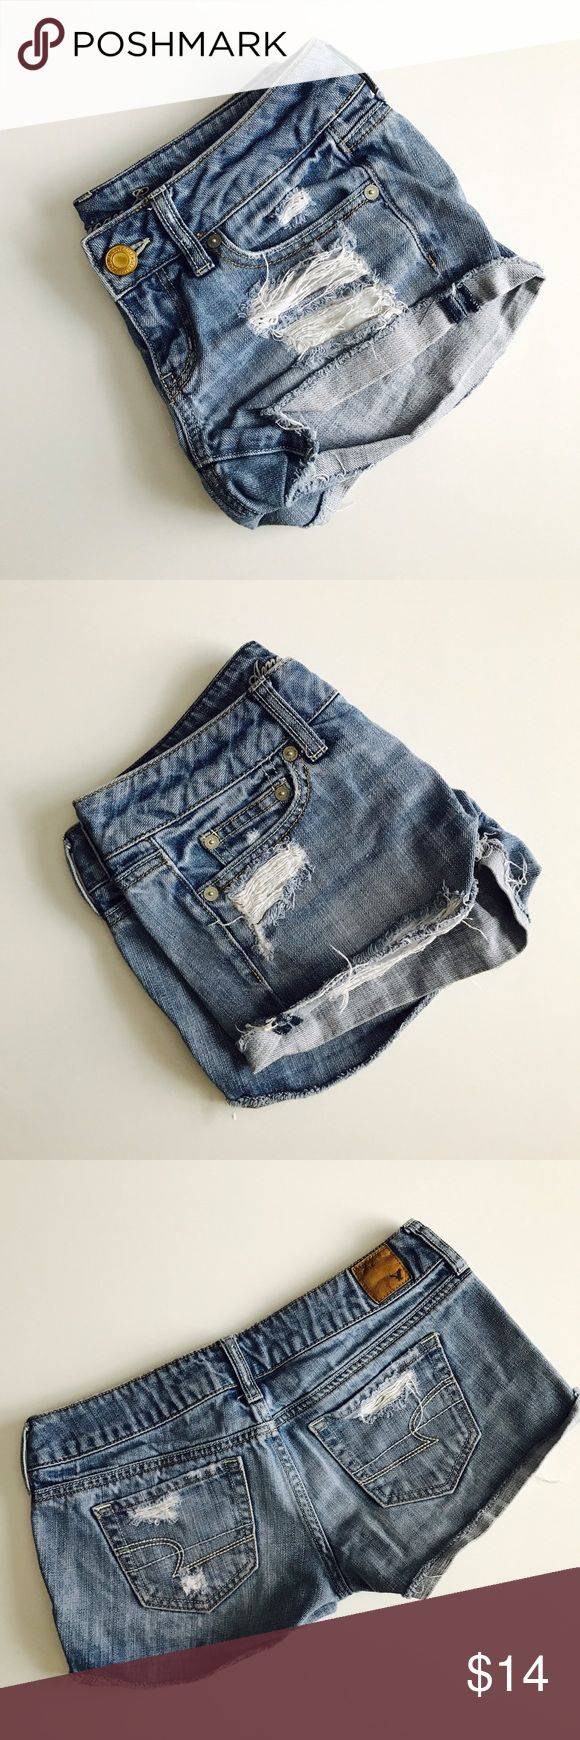 "American Eagle denim shorts. Good used condition. Were purchased this way, NOT homemade. Light denim wash (slightly lighter blue than pictured). Size 0. 3"" inseam (shorter when cuffed). Waist approx 15"" flat across. Price is firm unless bundled. Sorry, no trades & I am unable to model. American Eagle Outfitters Shorts Jean Shorts"